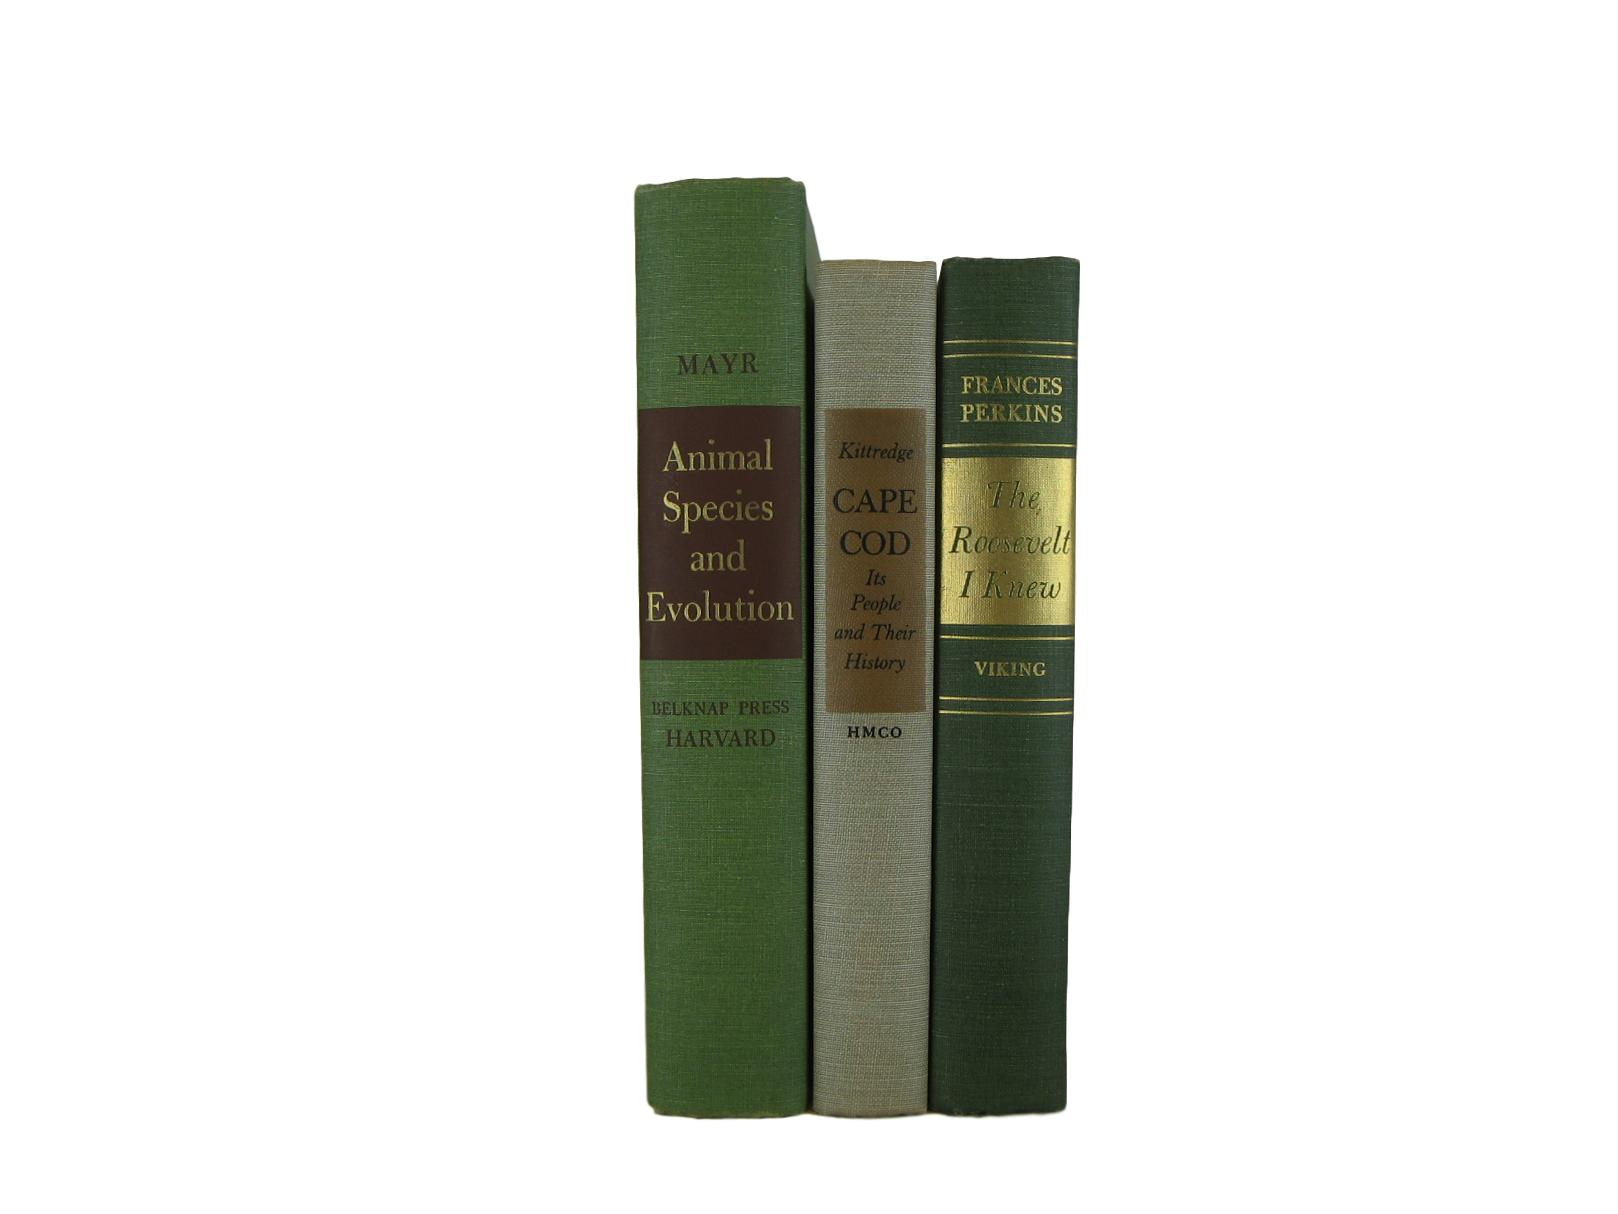 Farmhouse Rustic  Decorative Books in Green and Neutrals - Decades of Vintage